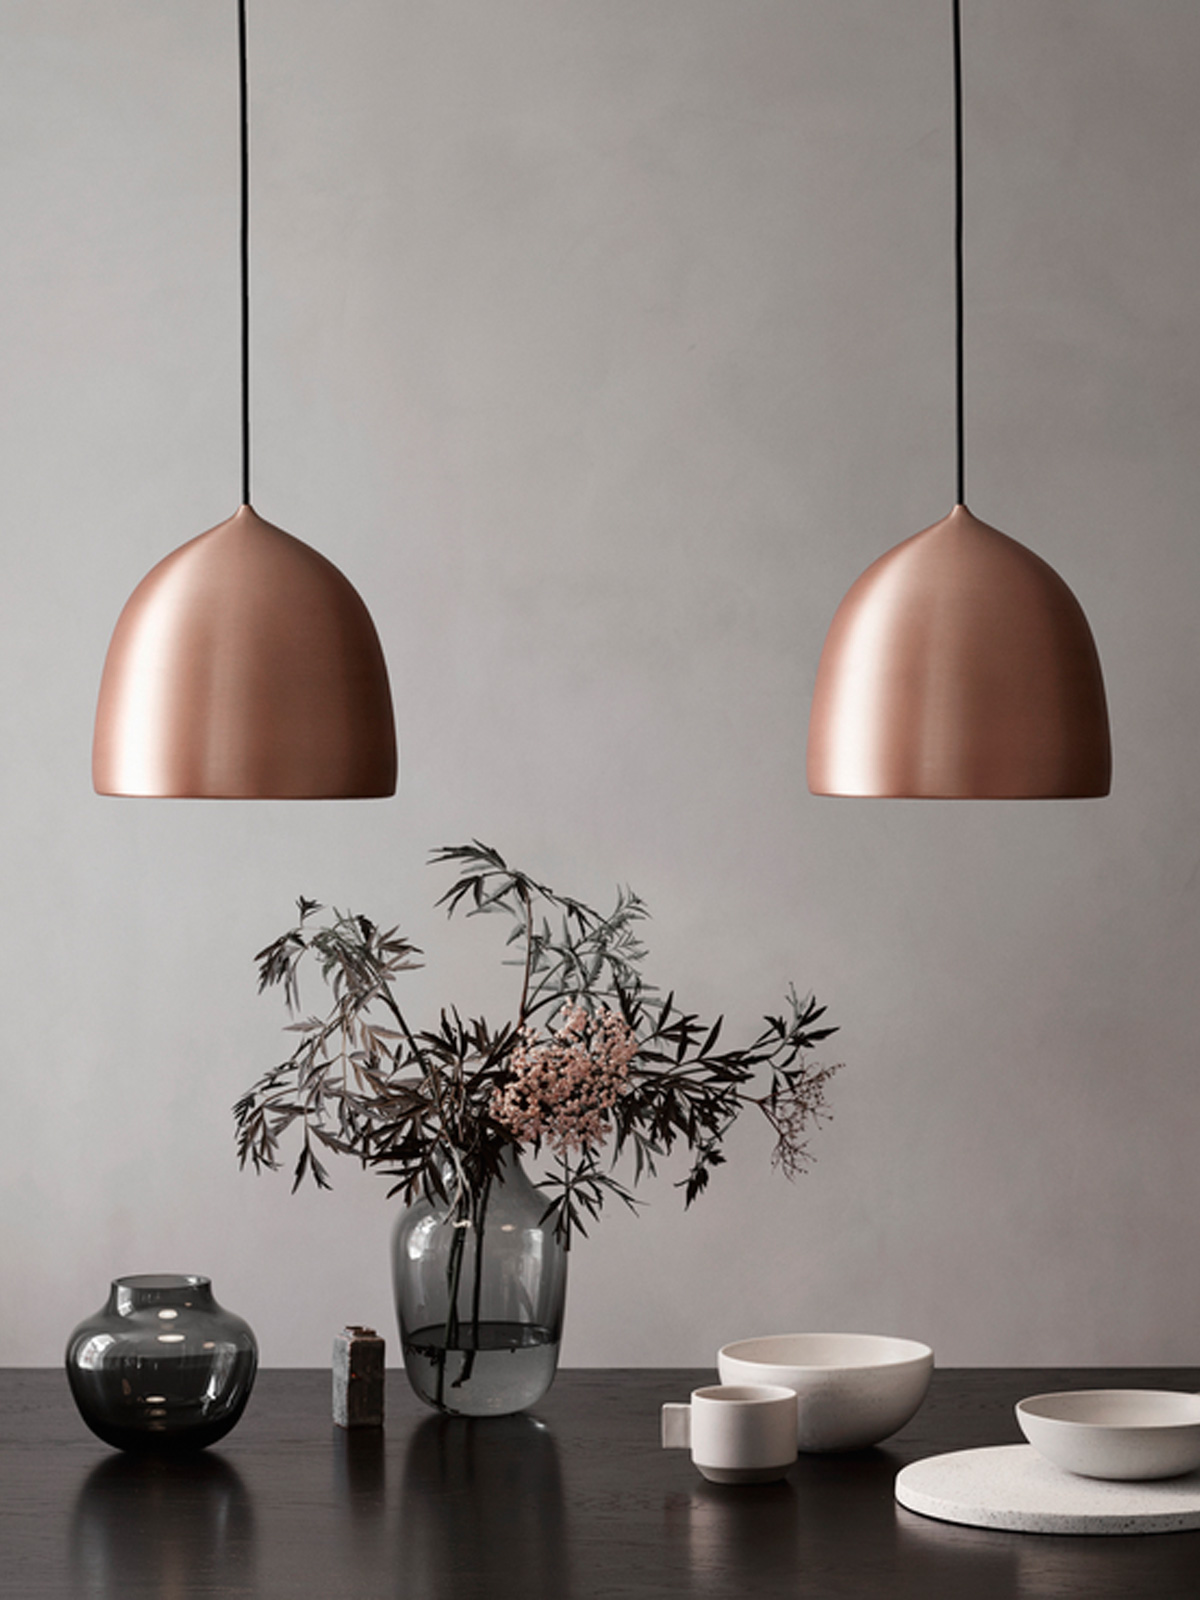 DesignOrt Blog: Neuheiten von Lightyears Suspense Copper